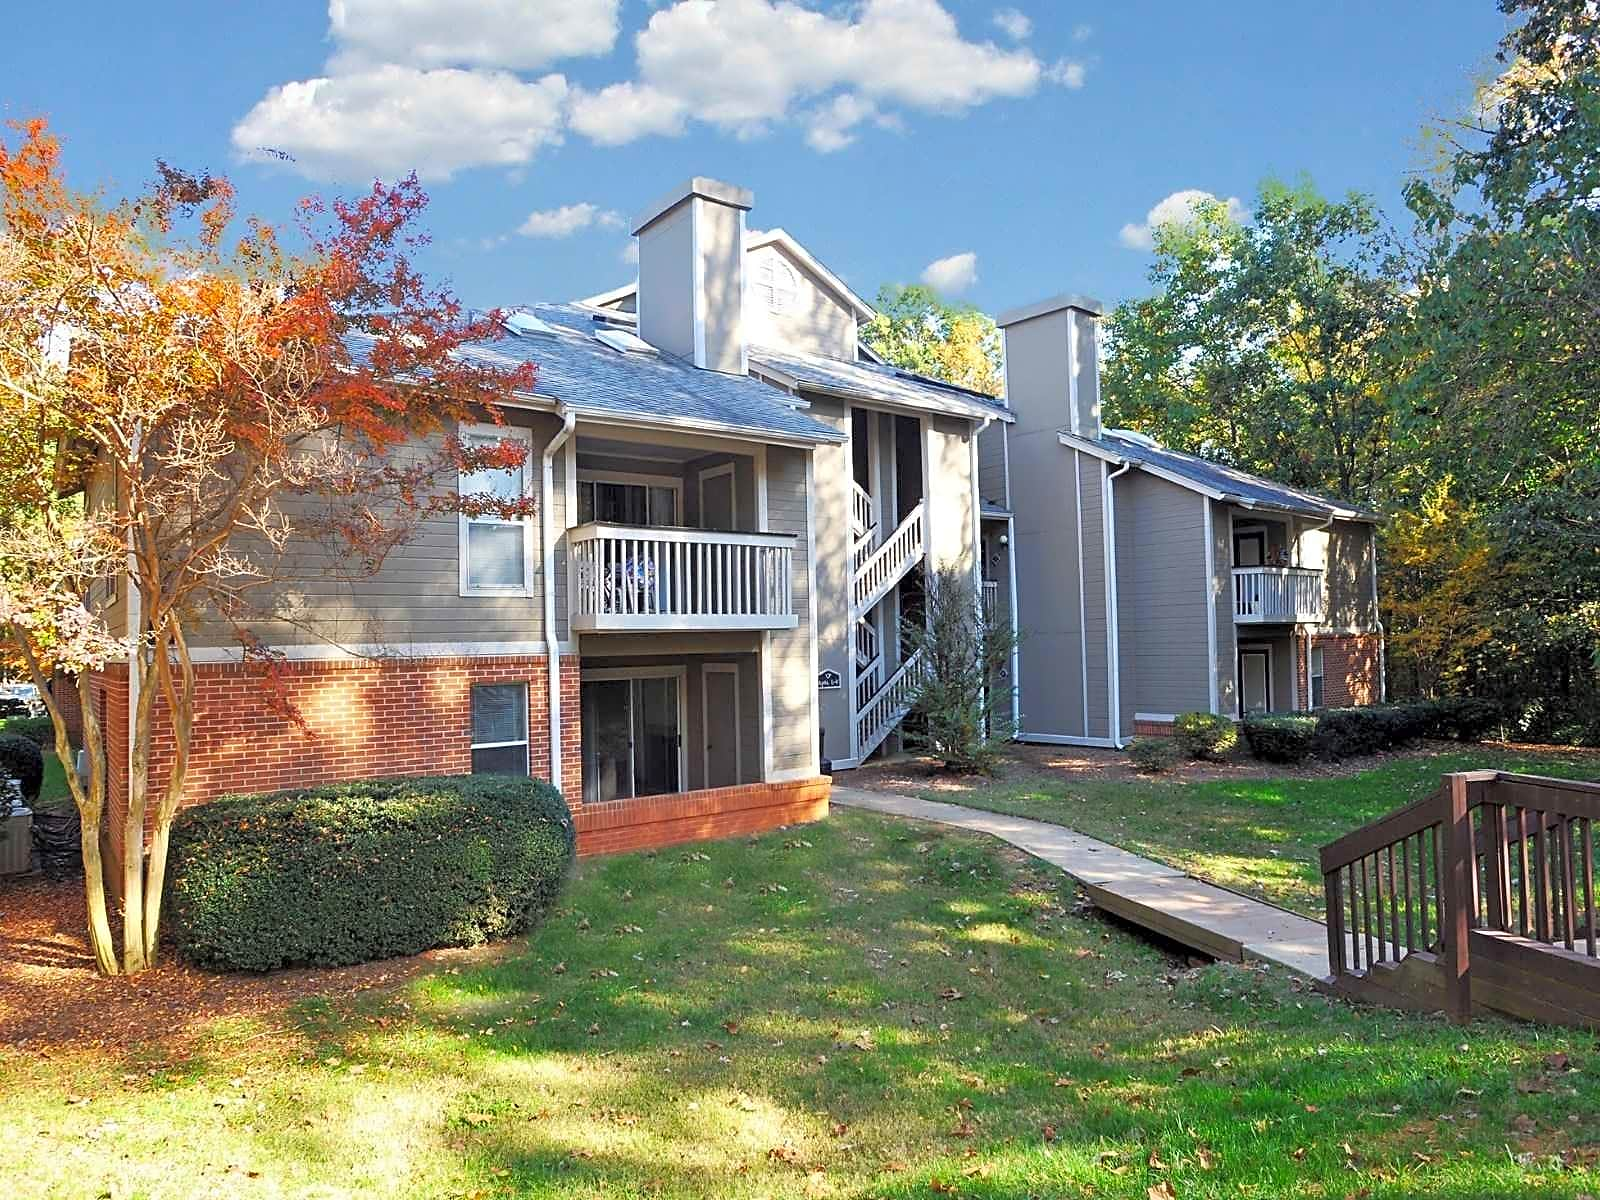 Apartments Near Guilford Hunters Chase for Guilford College Students in Greensboro, NC